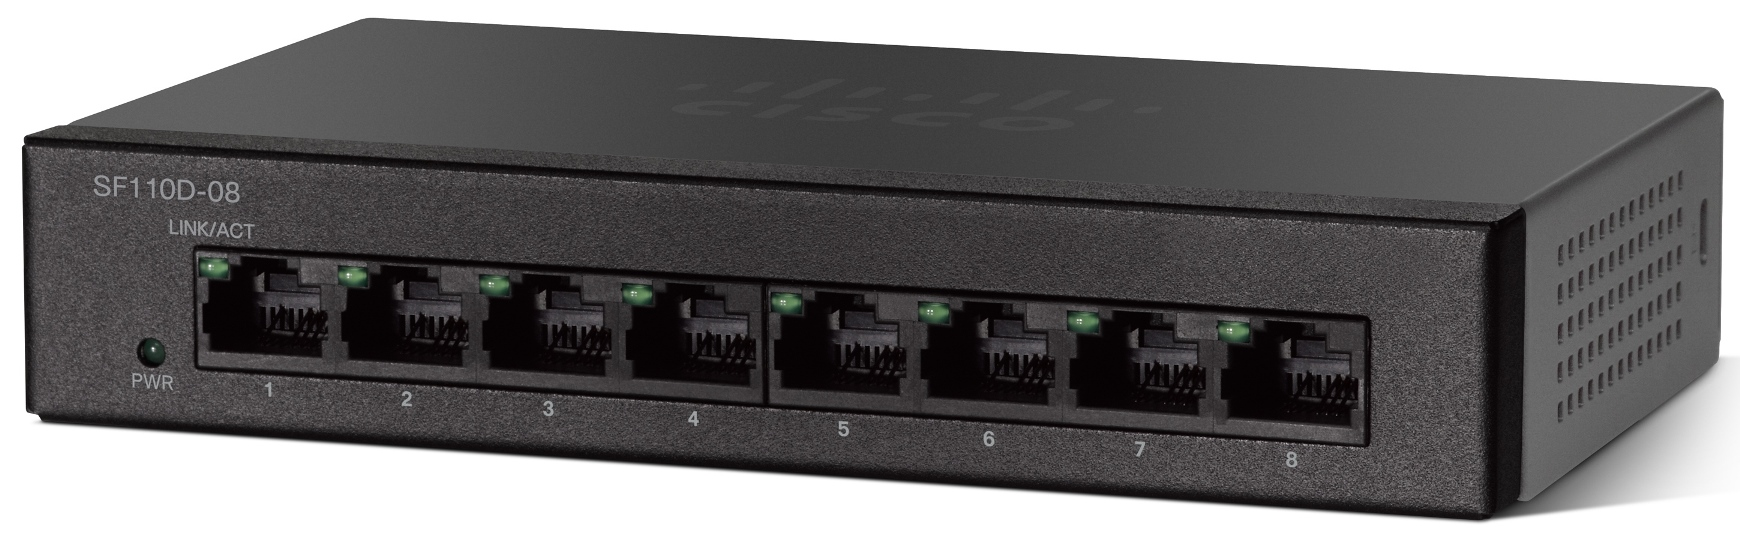 Cisco SF110D-08 8-Port 10/100 Unmanaged Switch